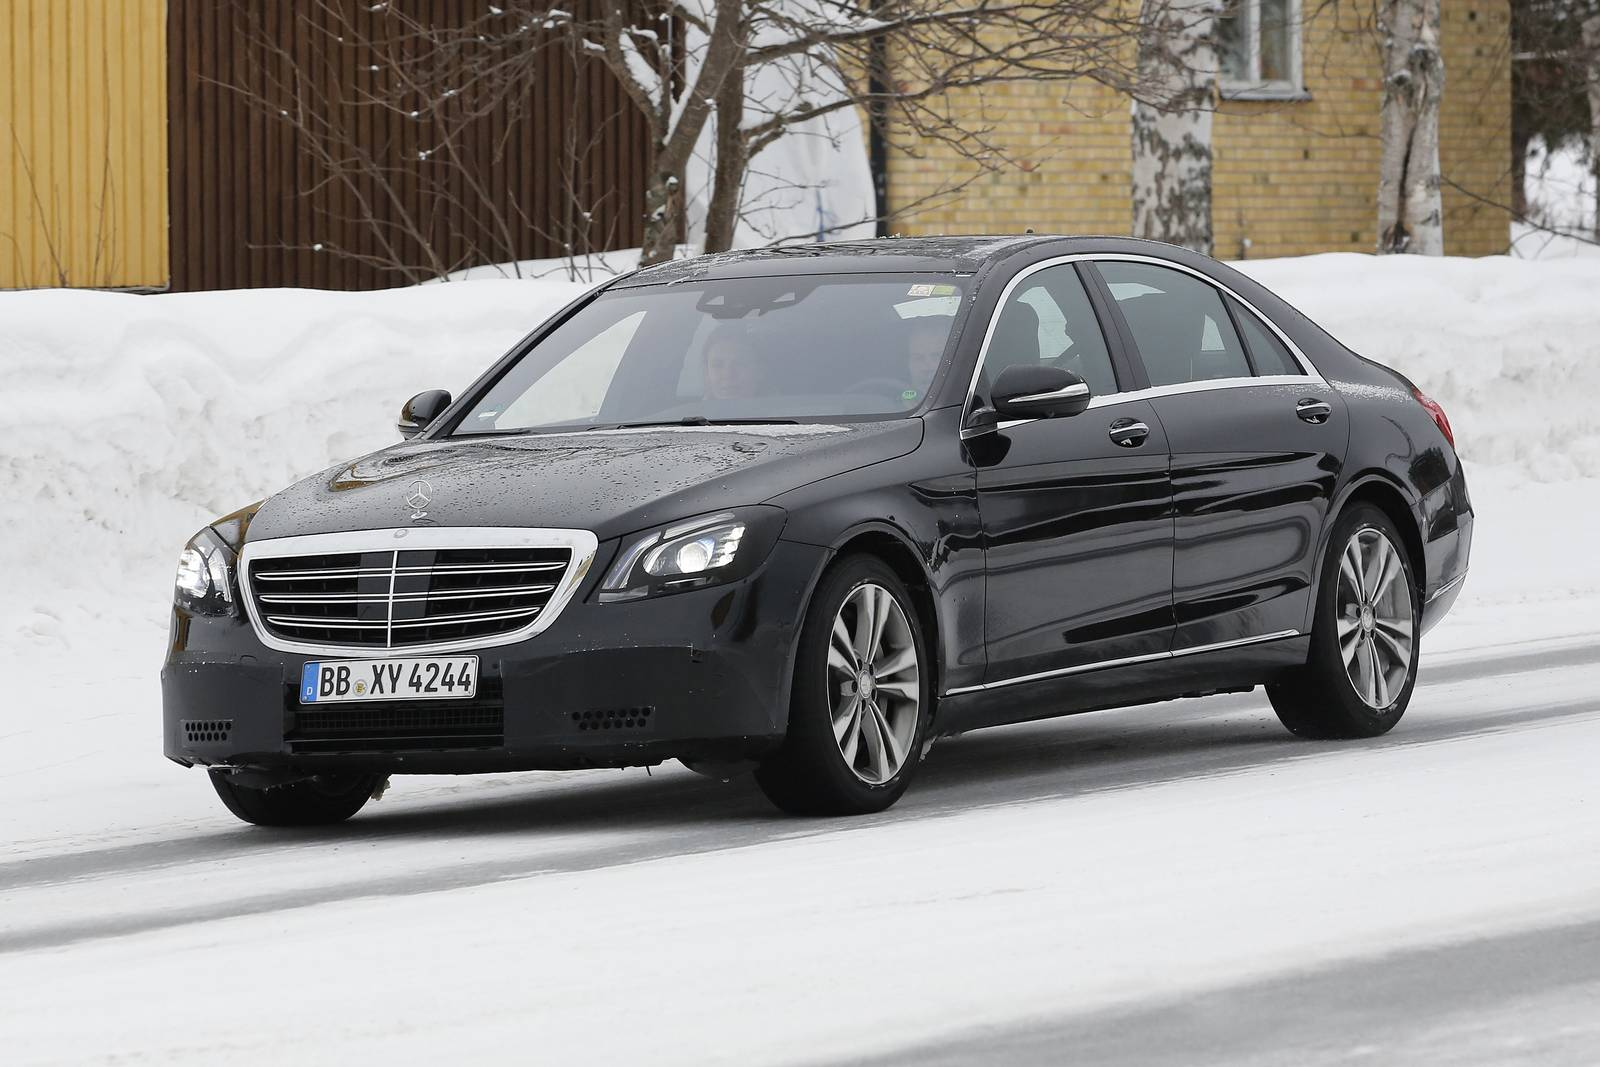 mercedes benz s class facelift new spy shots gtspirit. Black Bedroom Furniture Sets. Home Design Ideas